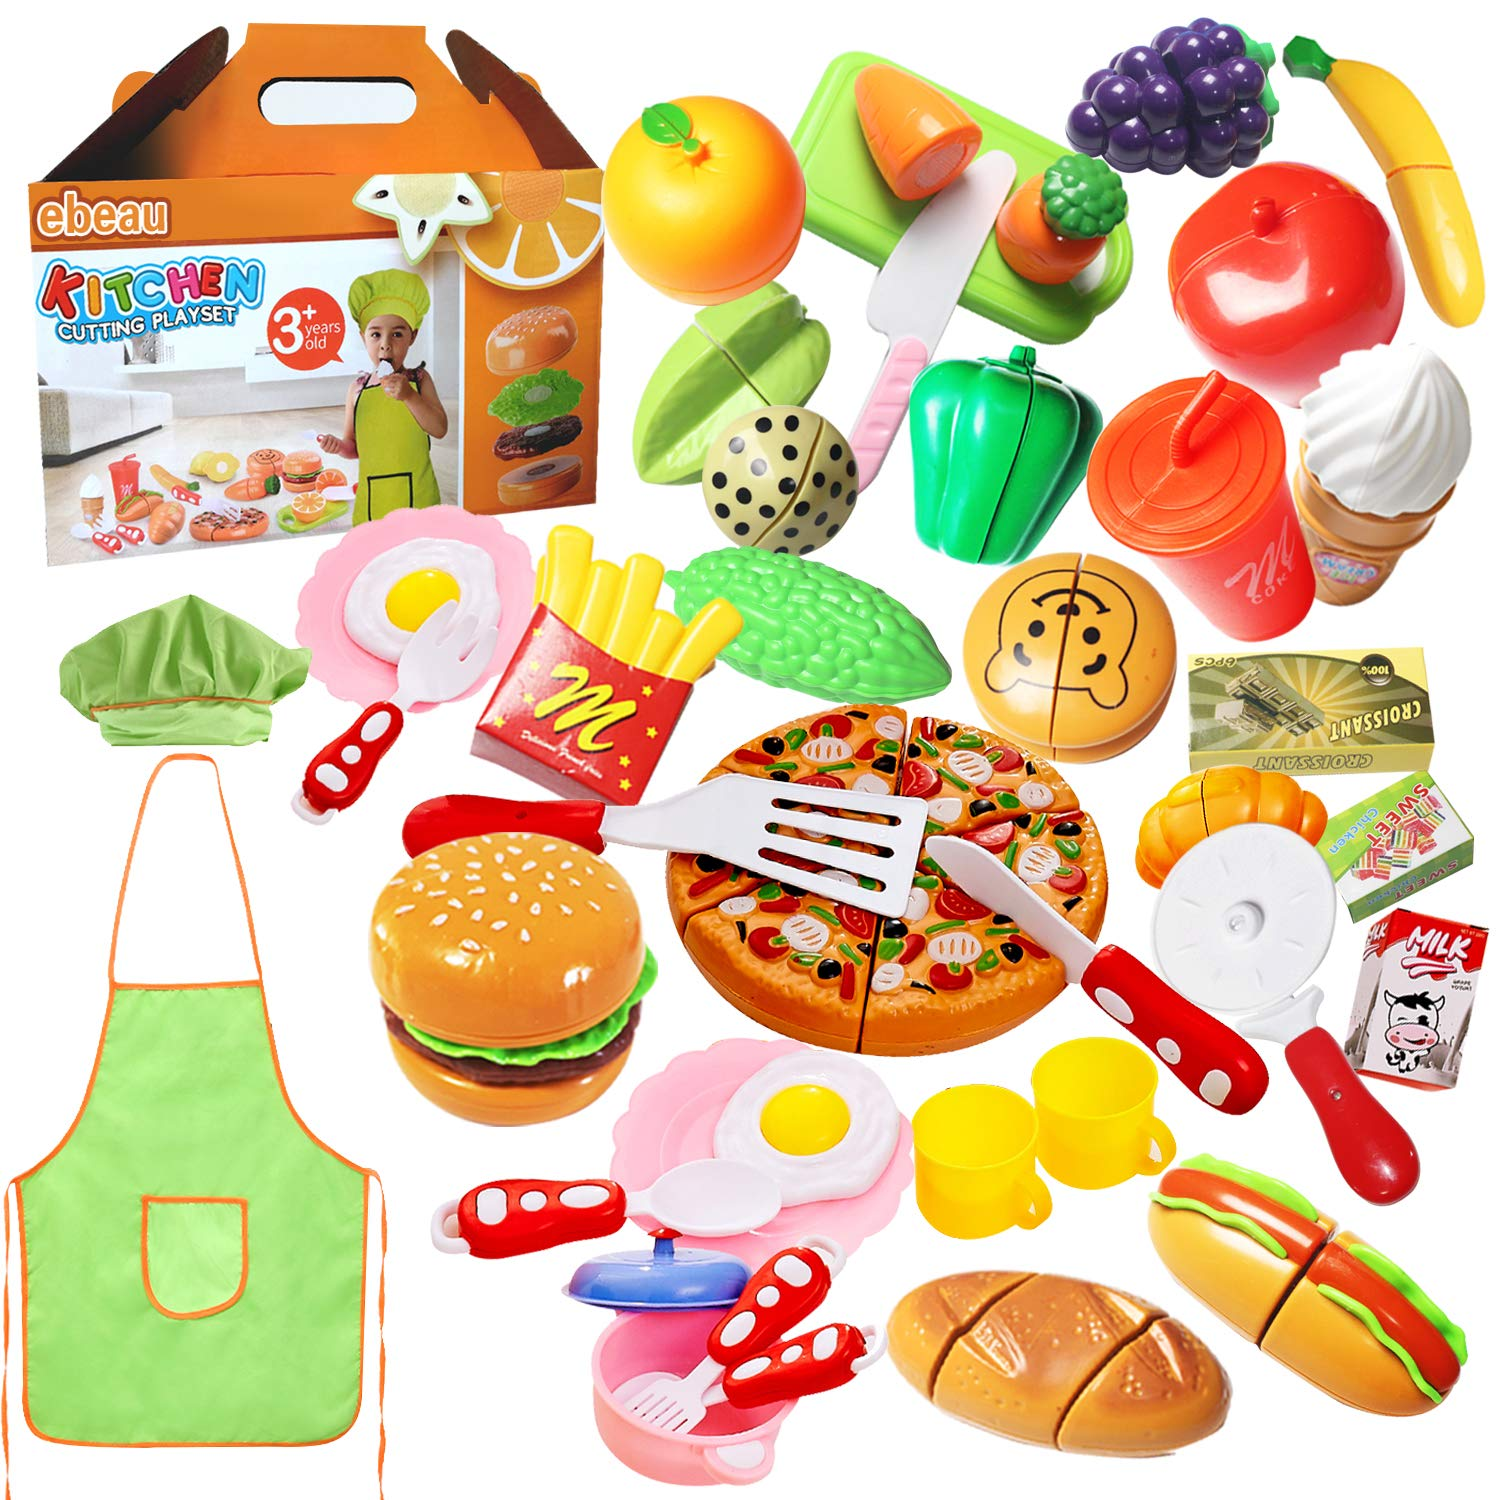 Play Food Set for Kids 40Pcs Pretend Cutting Fruits Food Playset Kitchen Cooking Sets Toys for Educational Learning Fake Plastic Foods for Toddlers Kids Girls Boys Inspiring Imagination with Apron Hat by ebeau